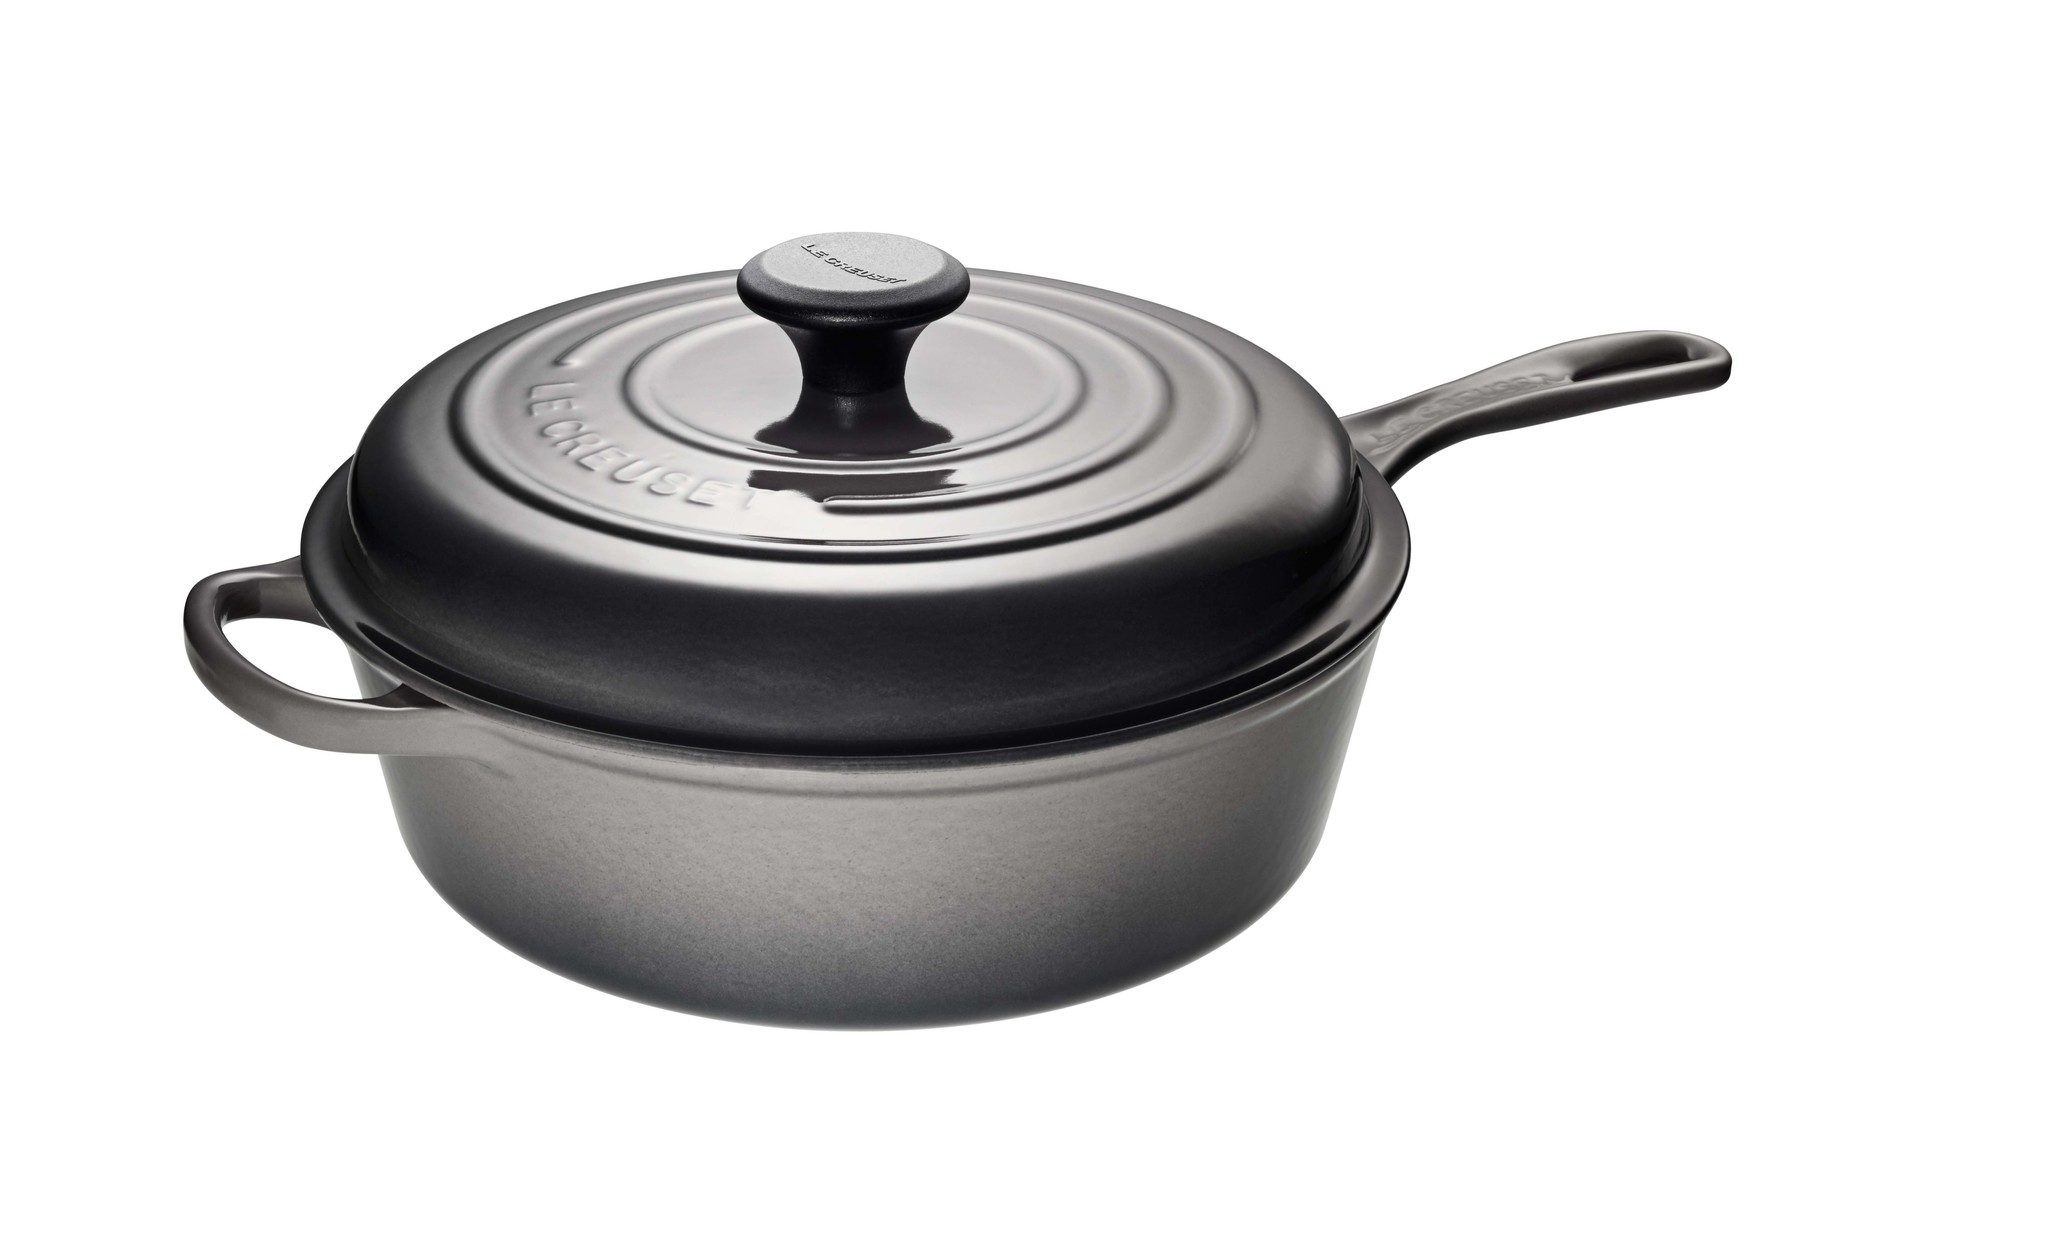 Le Creuset 3.5L Covered Saute Pan -Oyster